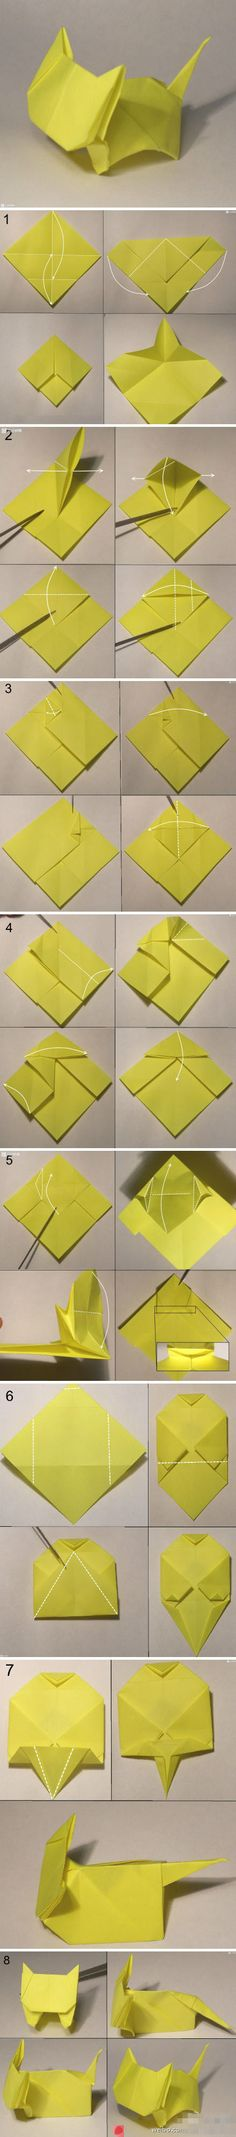 origami cat. I'm gonna try to find black origami paper and make it a black cat!